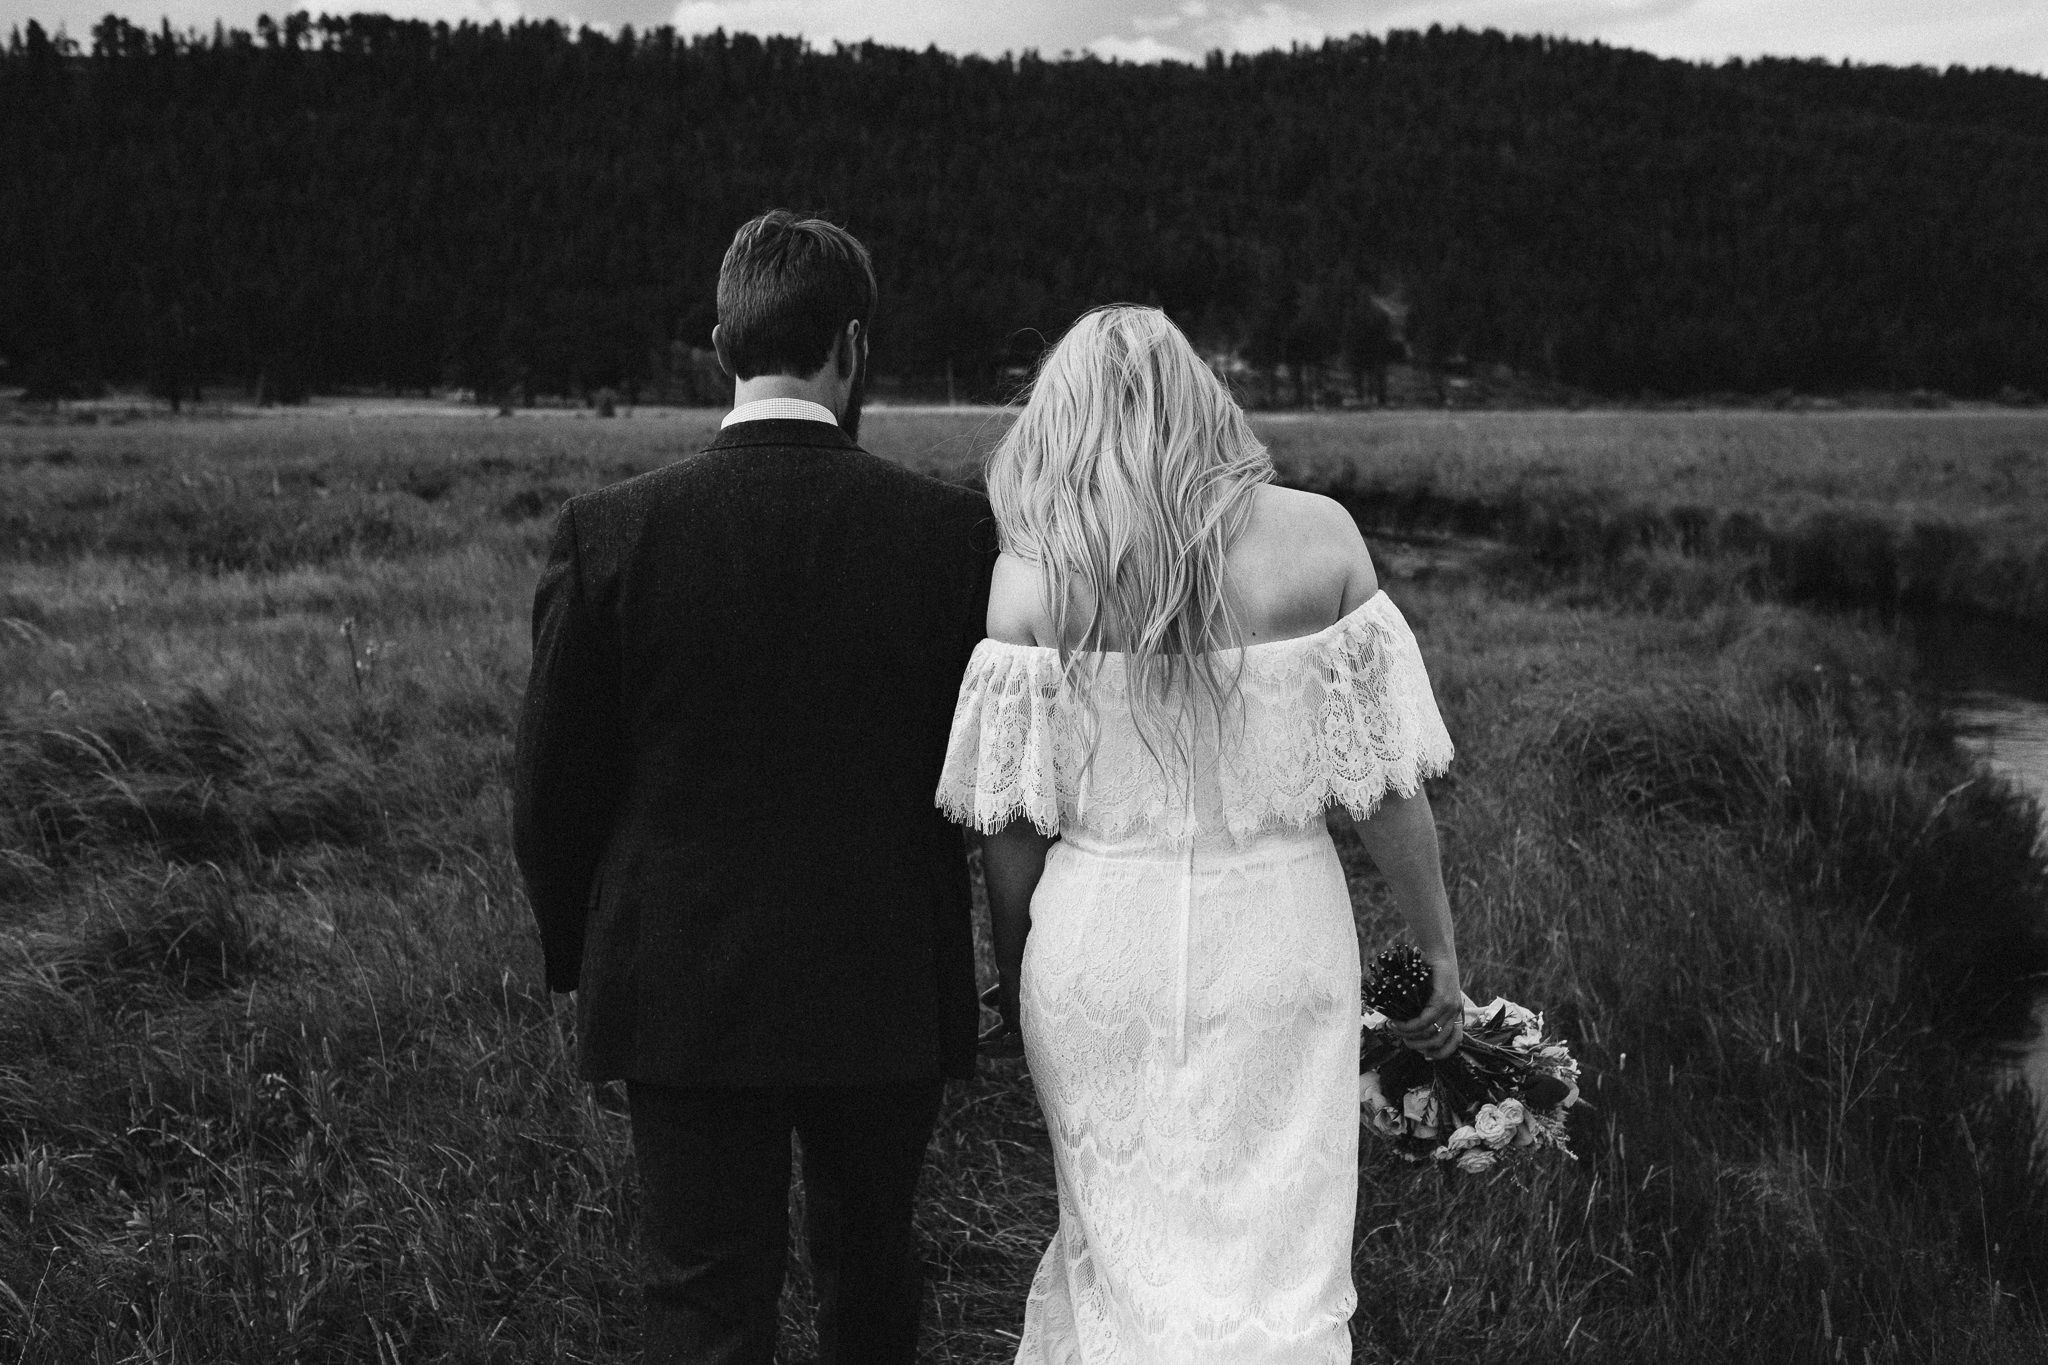 Bride and groom walking away from camera.